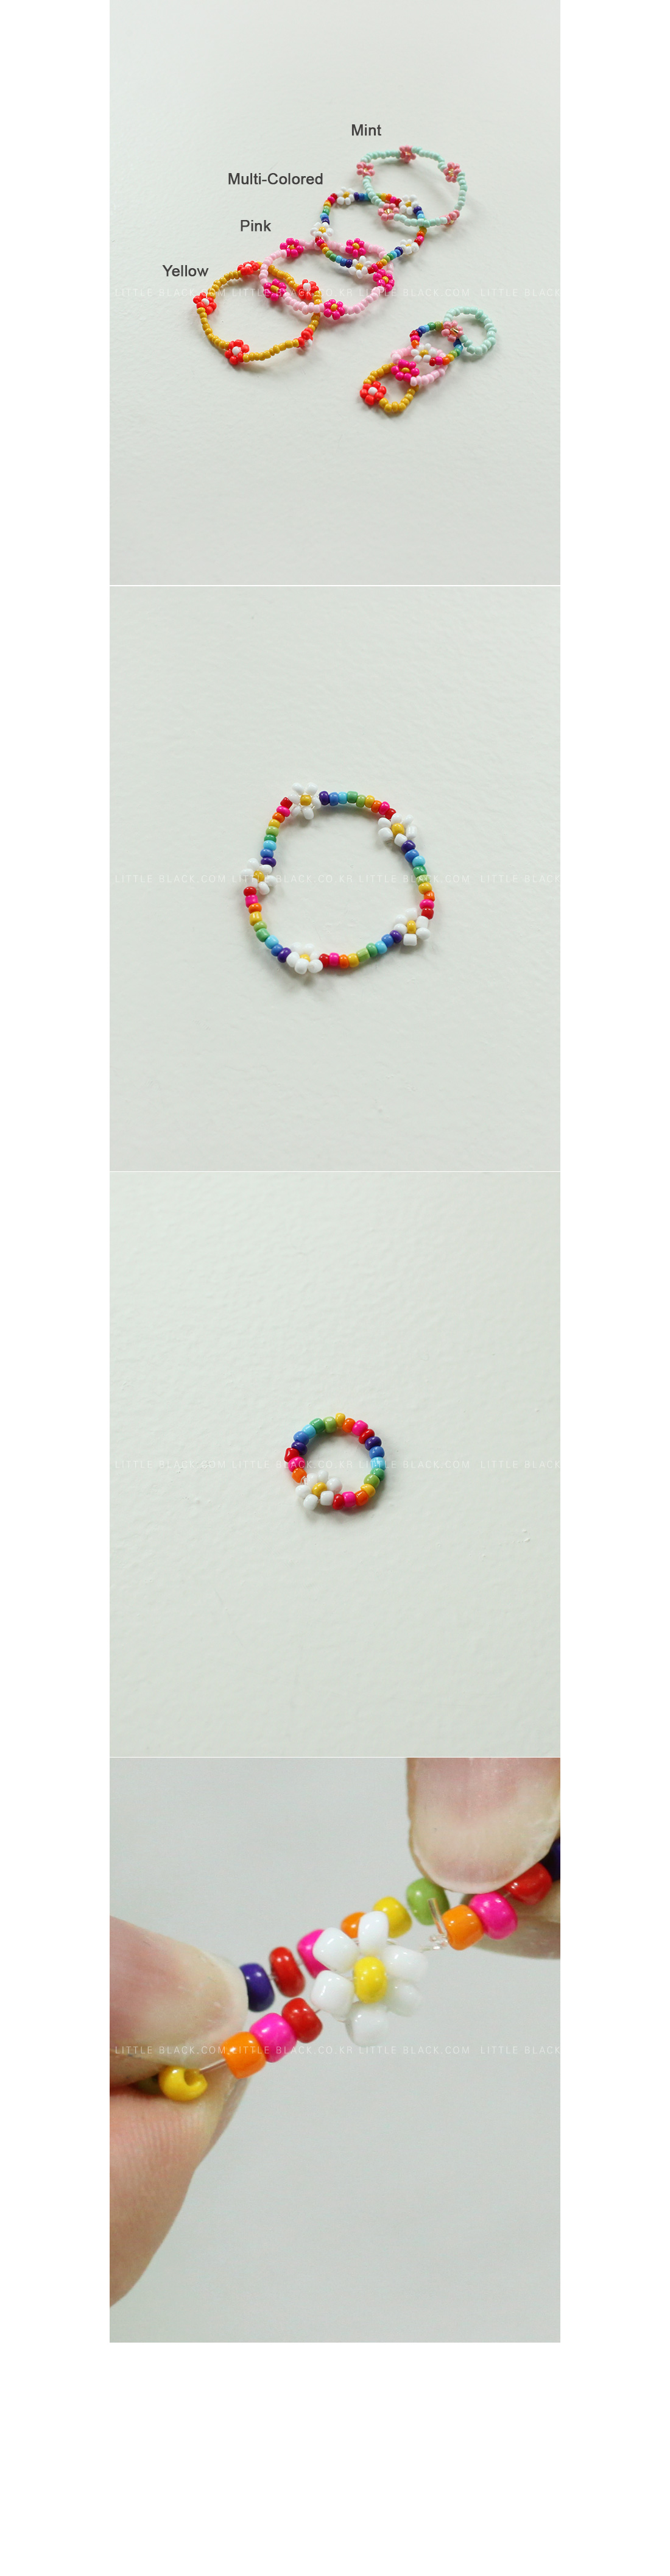 Bead Bracelet and Ring Set|